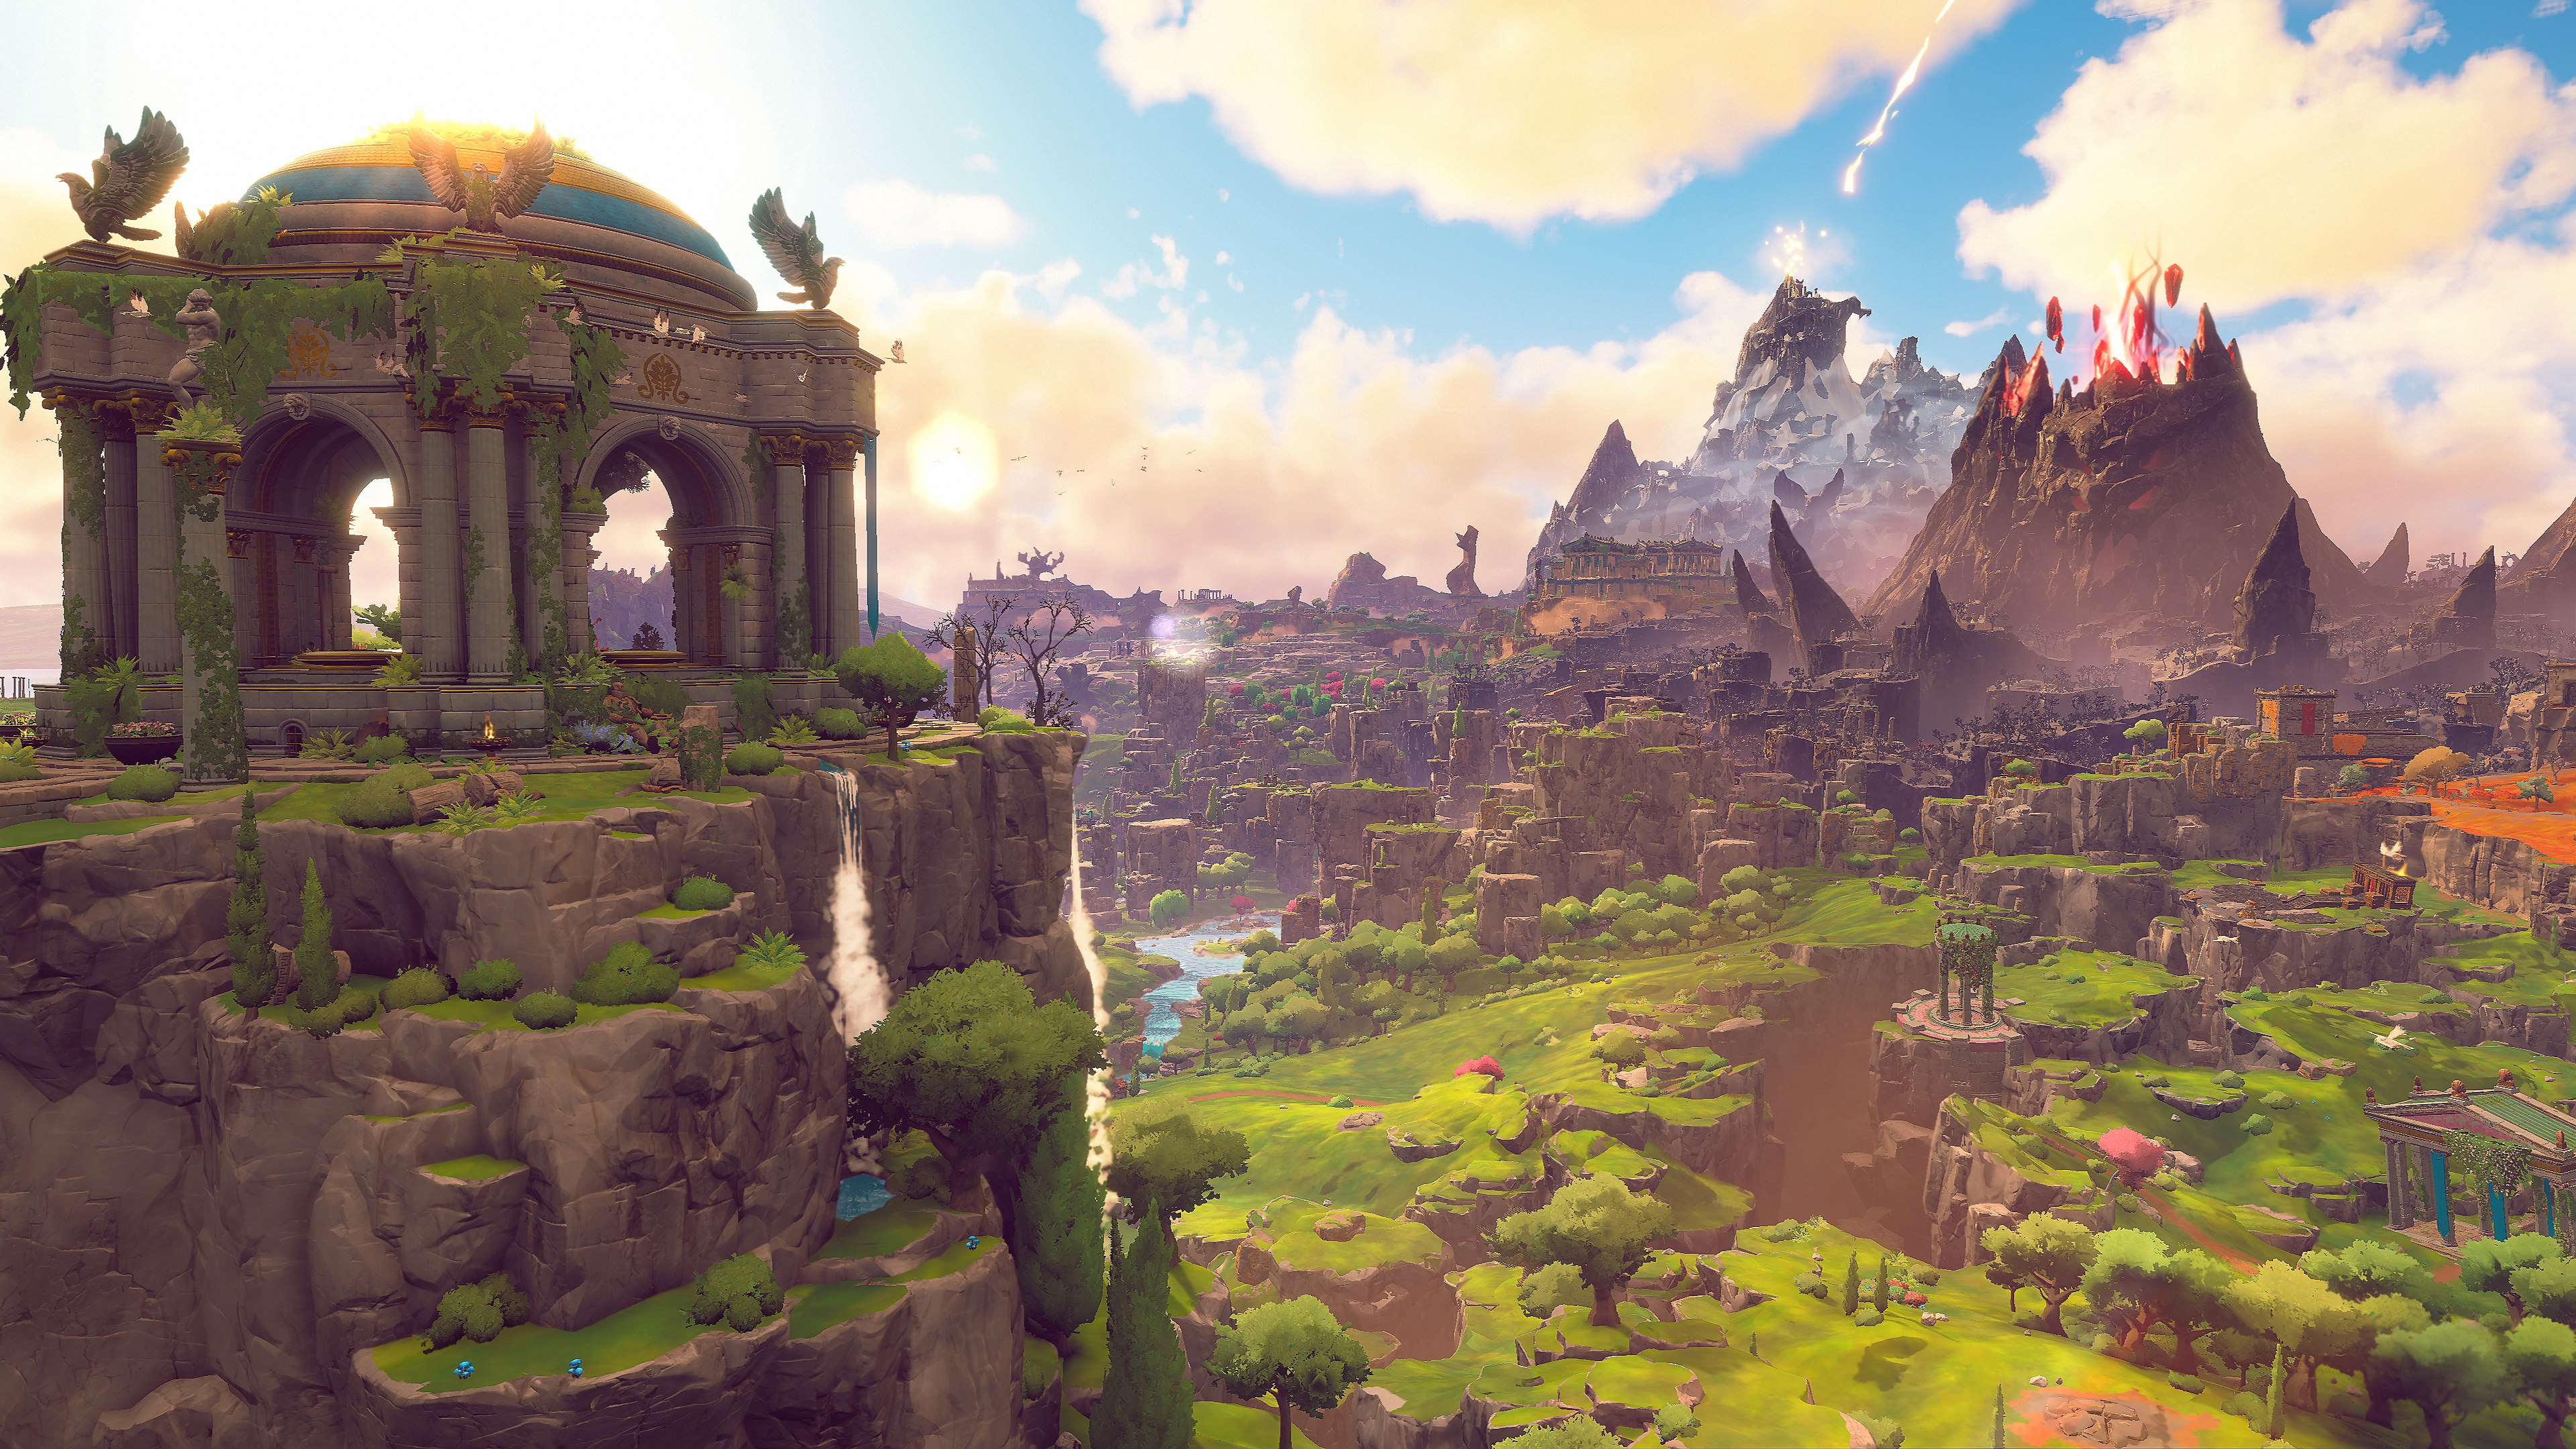 Immortals Fenyx Rising -explore a stylized open world image